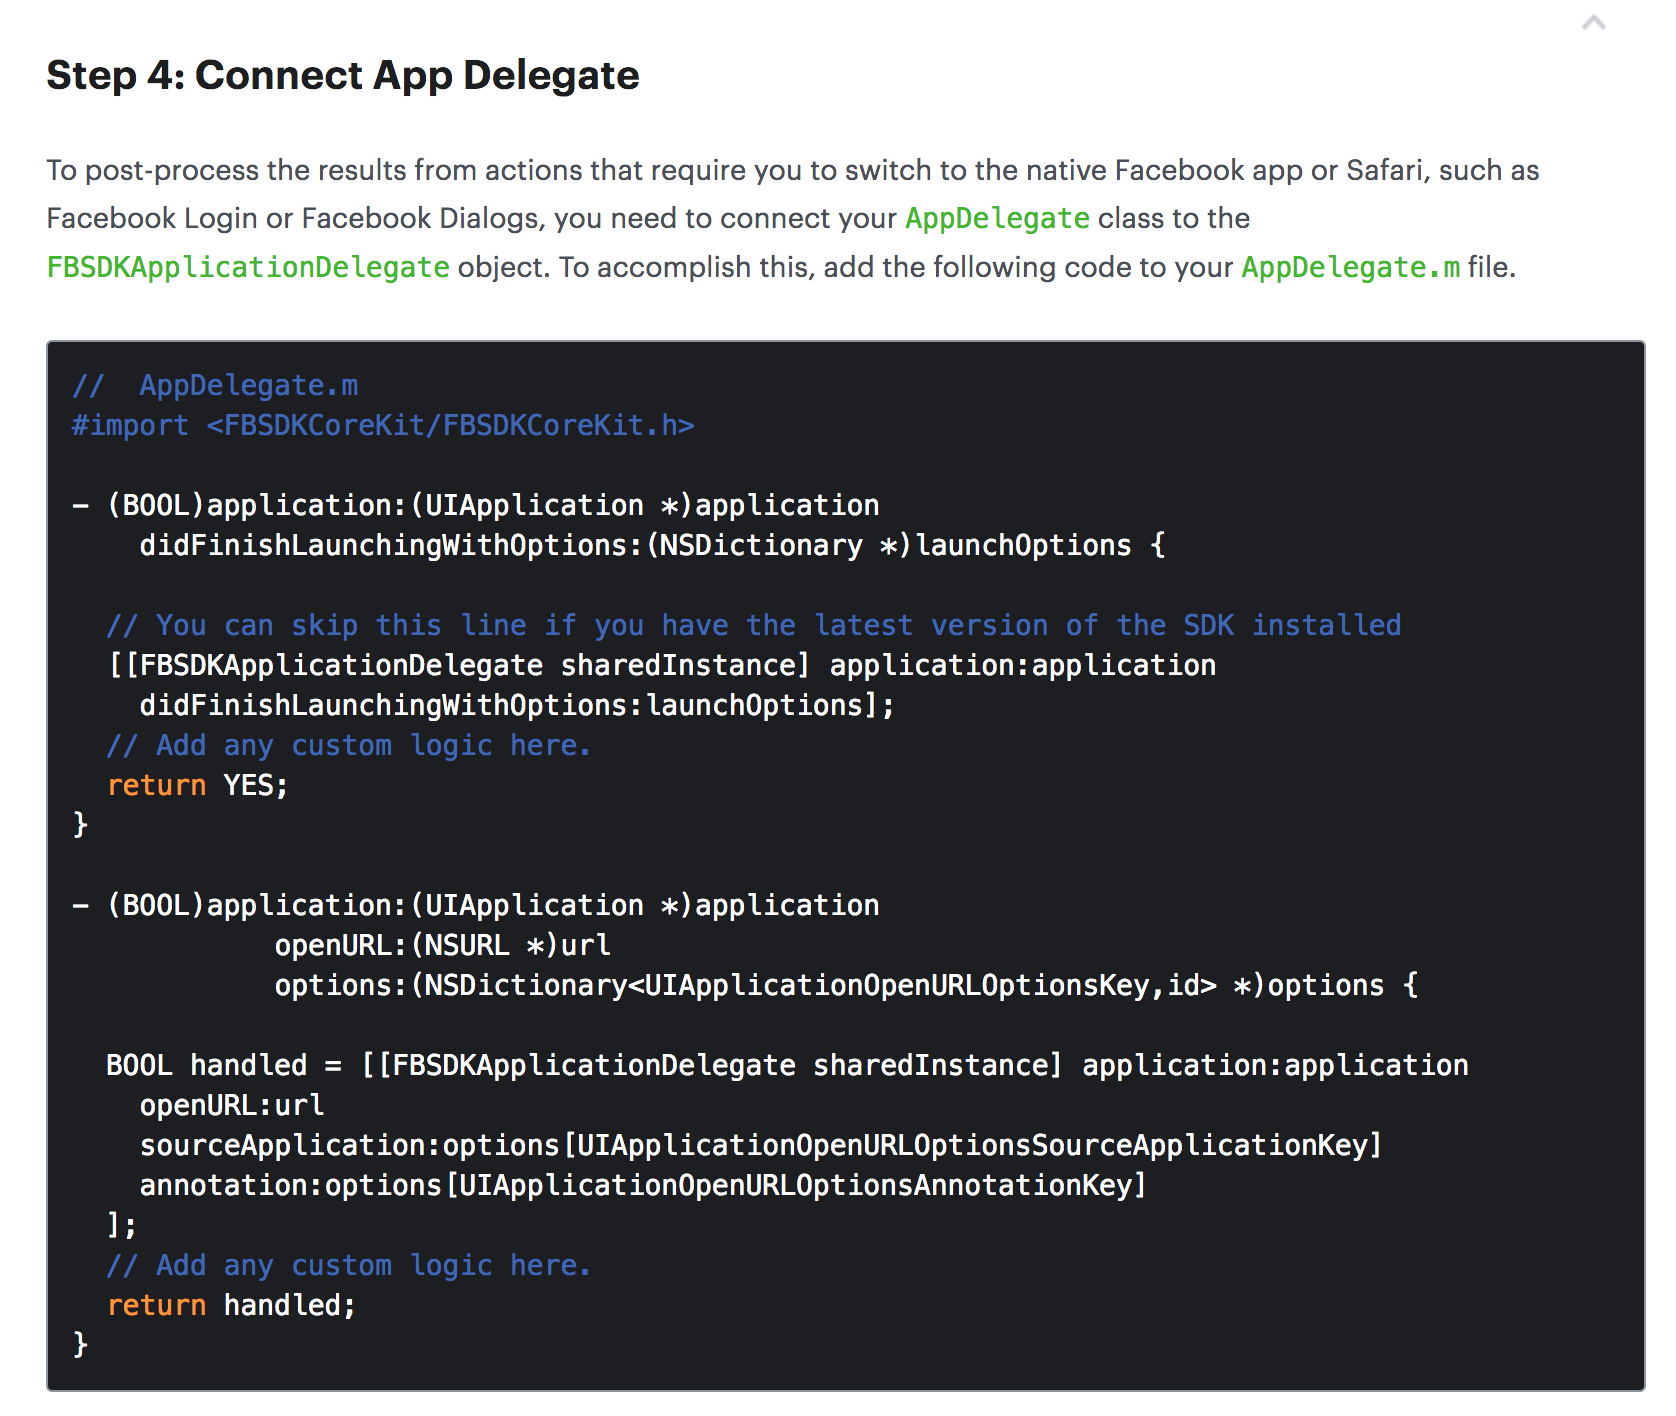 iOS: AppDelegate application:openURL:sourceApplication